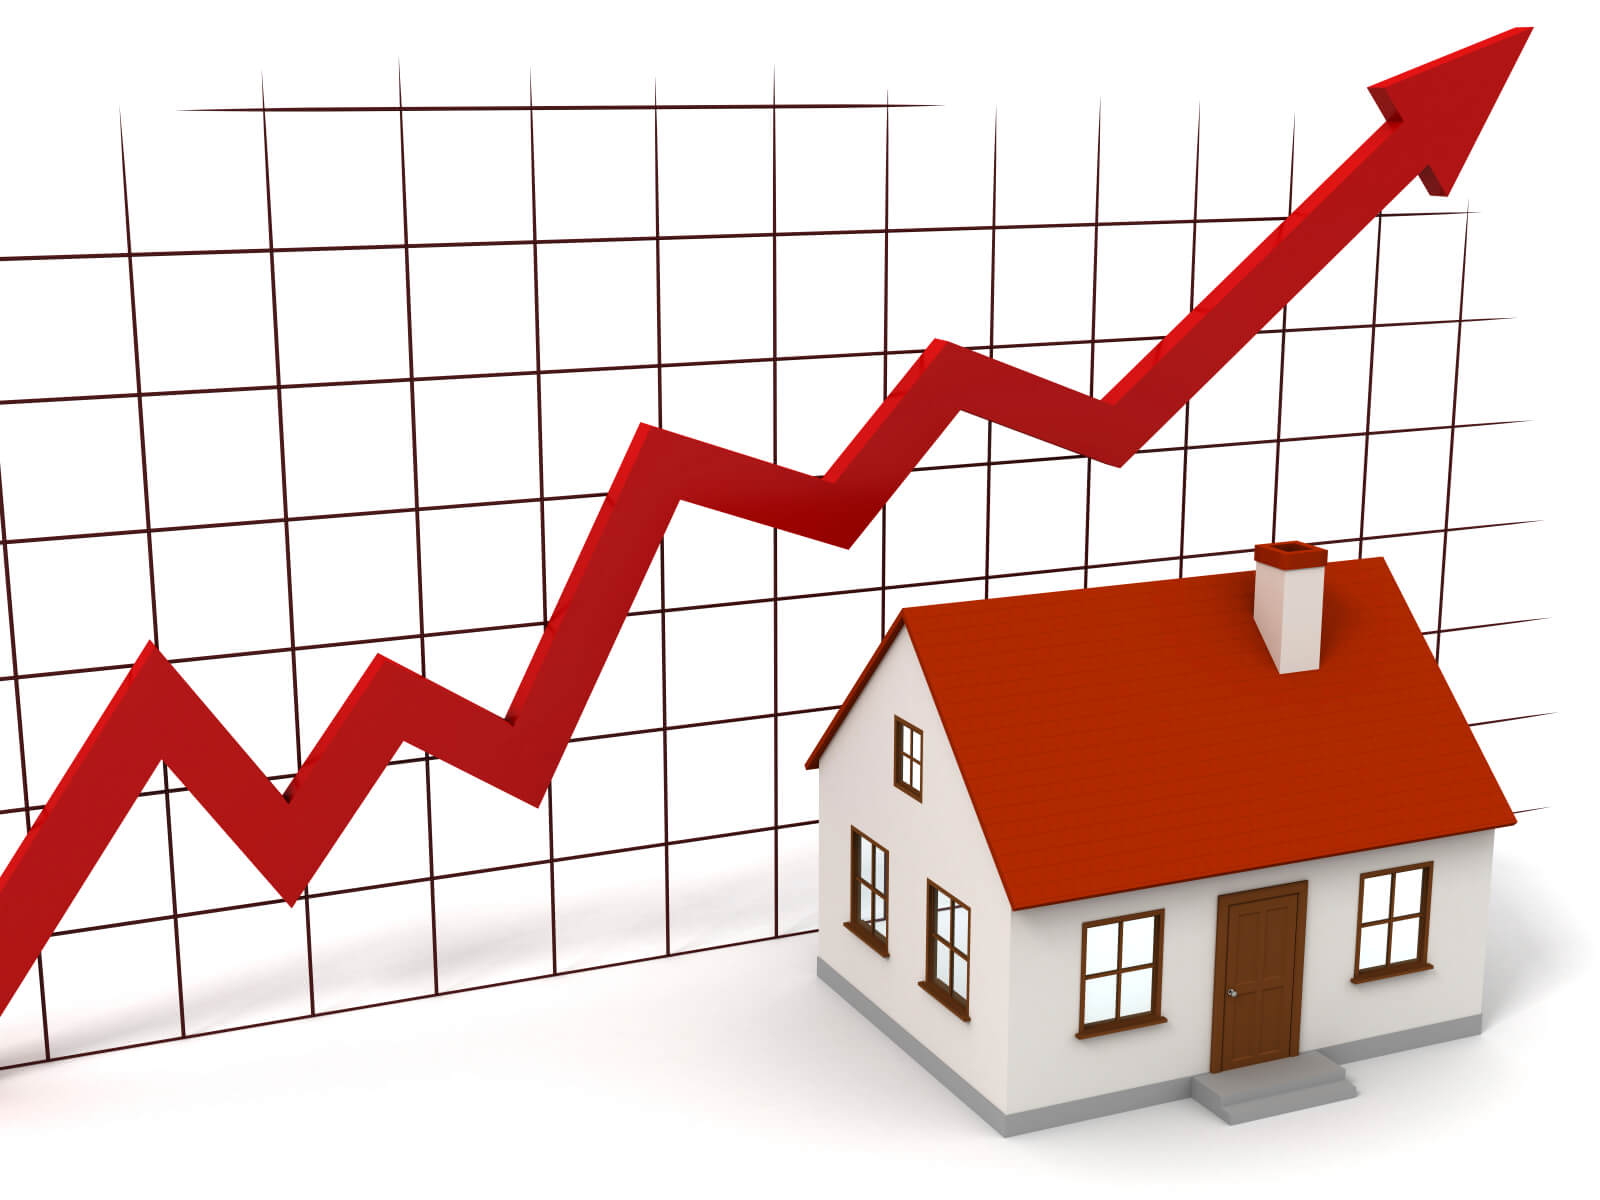 Investing In Real Estate In Up And Down Markets